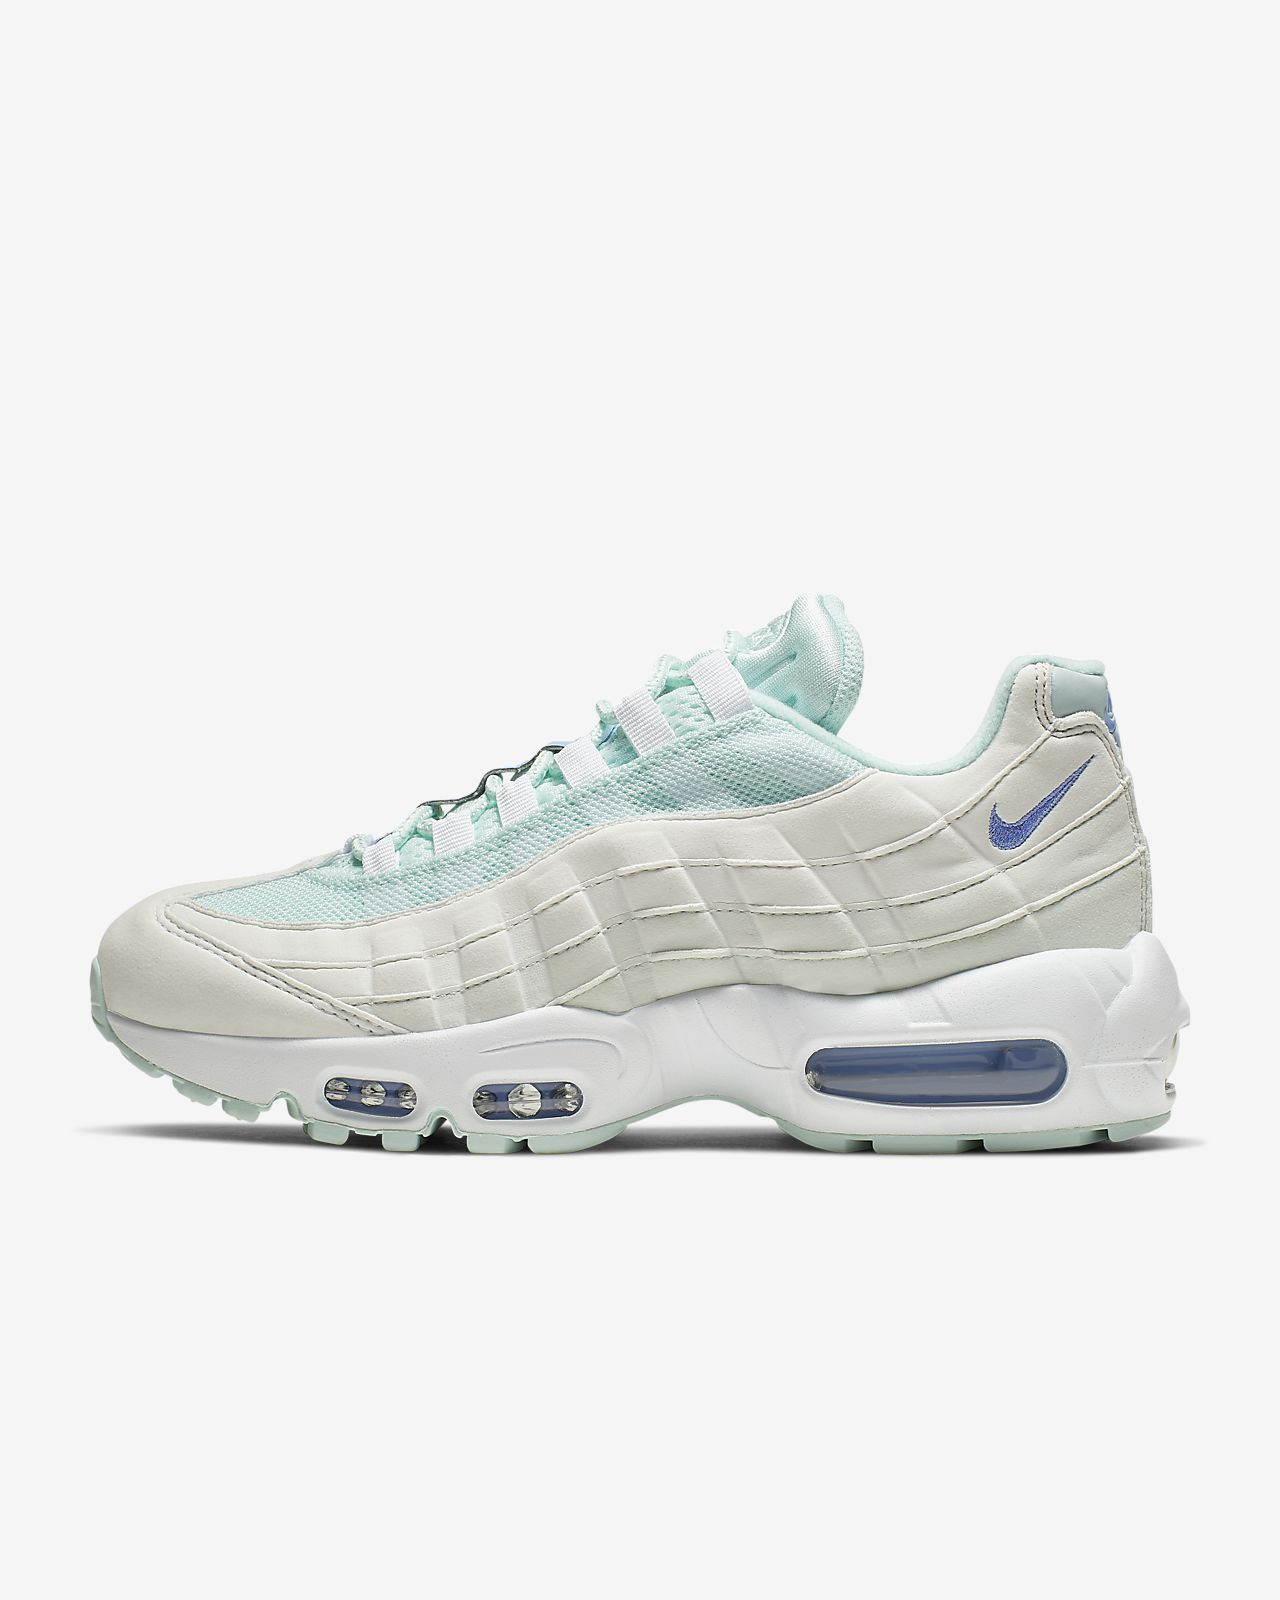 1b47cdd4a6 Nike Air Max 95 Women's Shoe. Nike.com